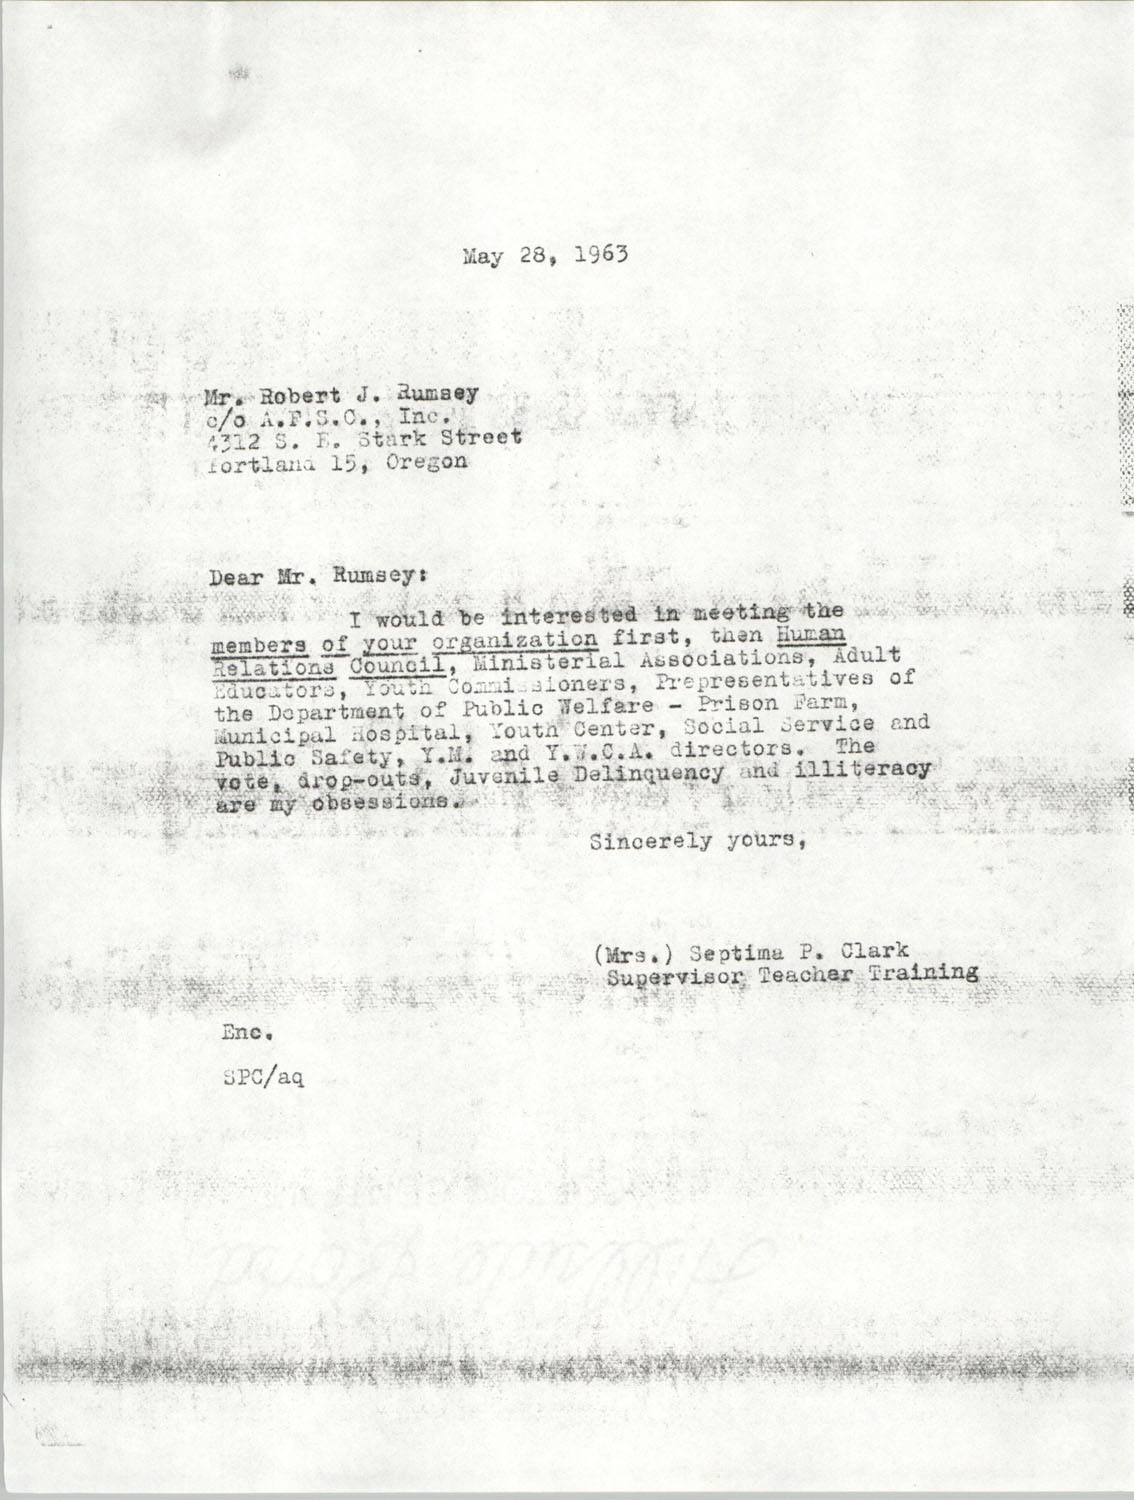 Letter from Septima P. Clark to Robert J. Rumsey, May 28, 1963